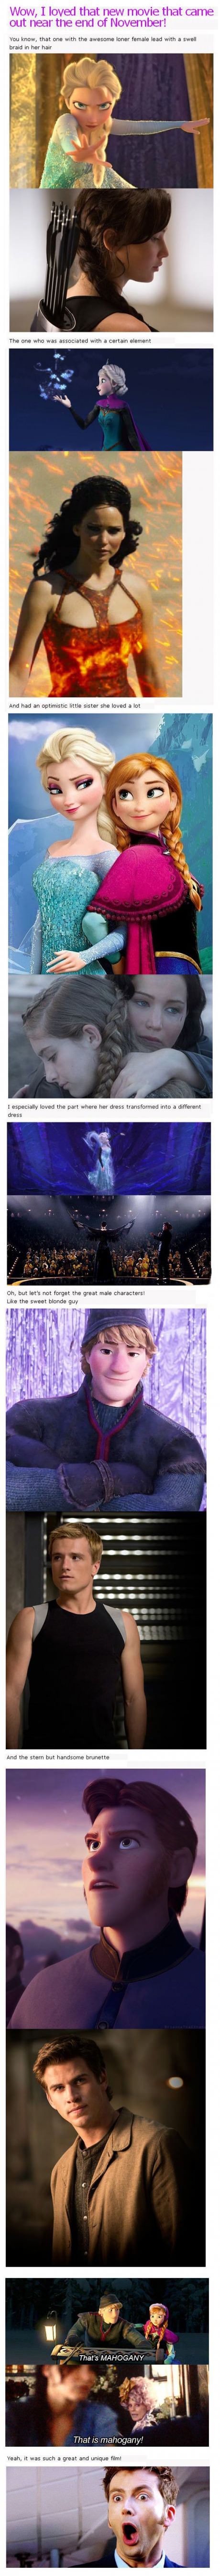 Resemblances between Frozen and Catching Fire